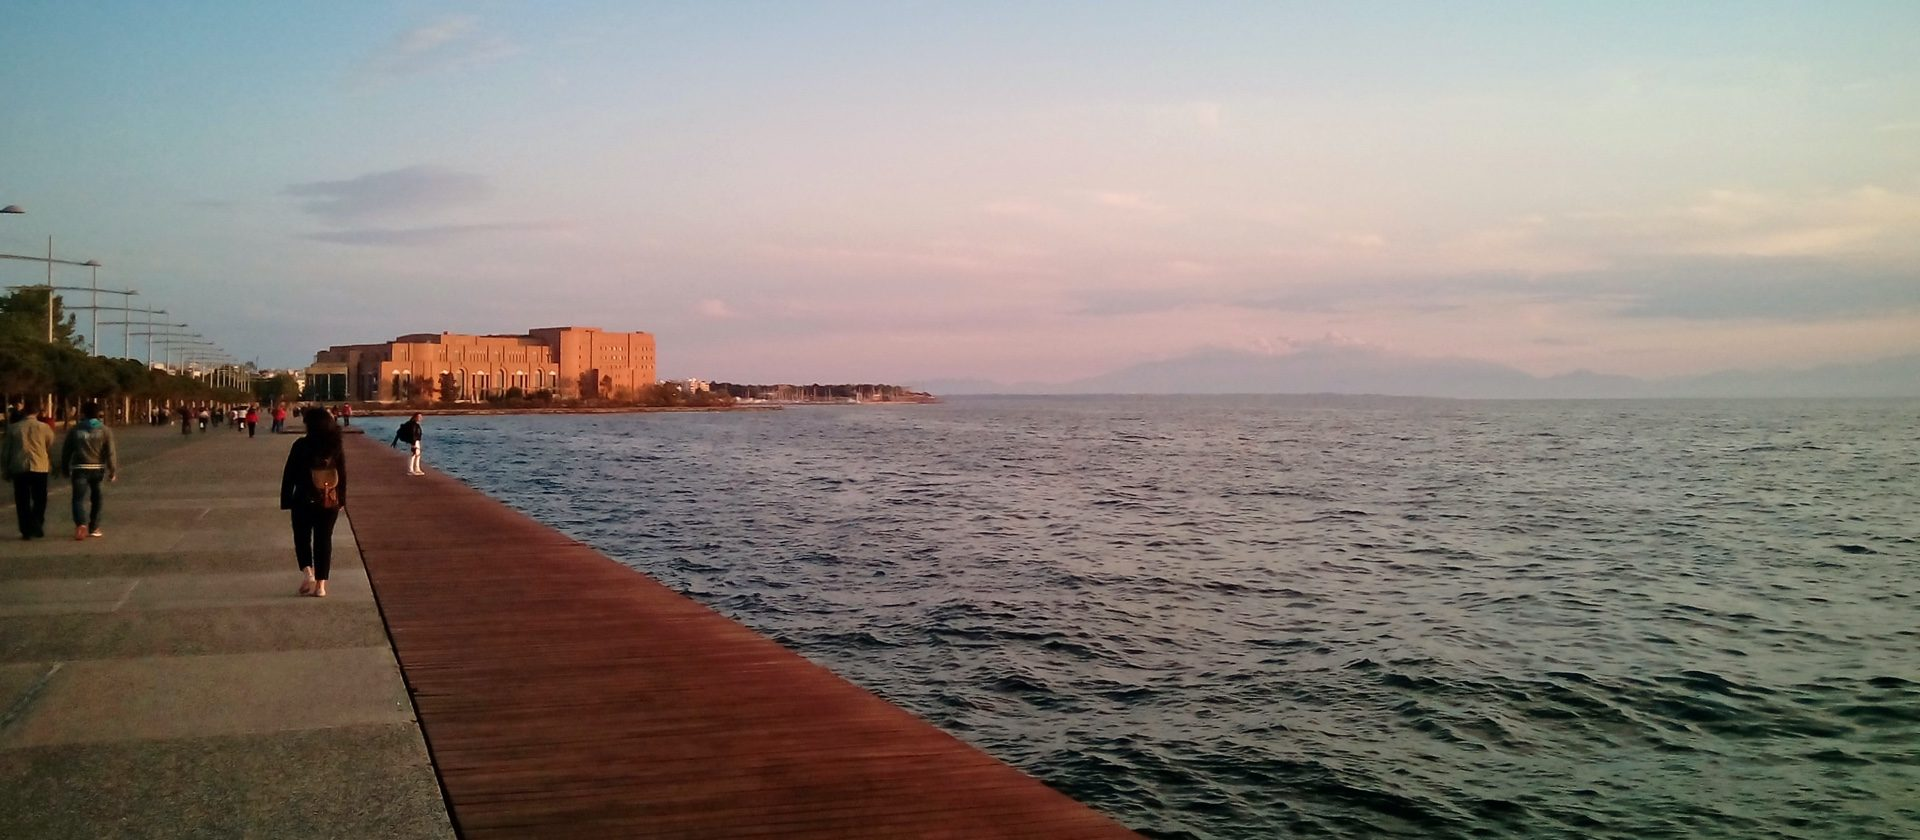 The Thessaloniki sea with the concert hall in the background